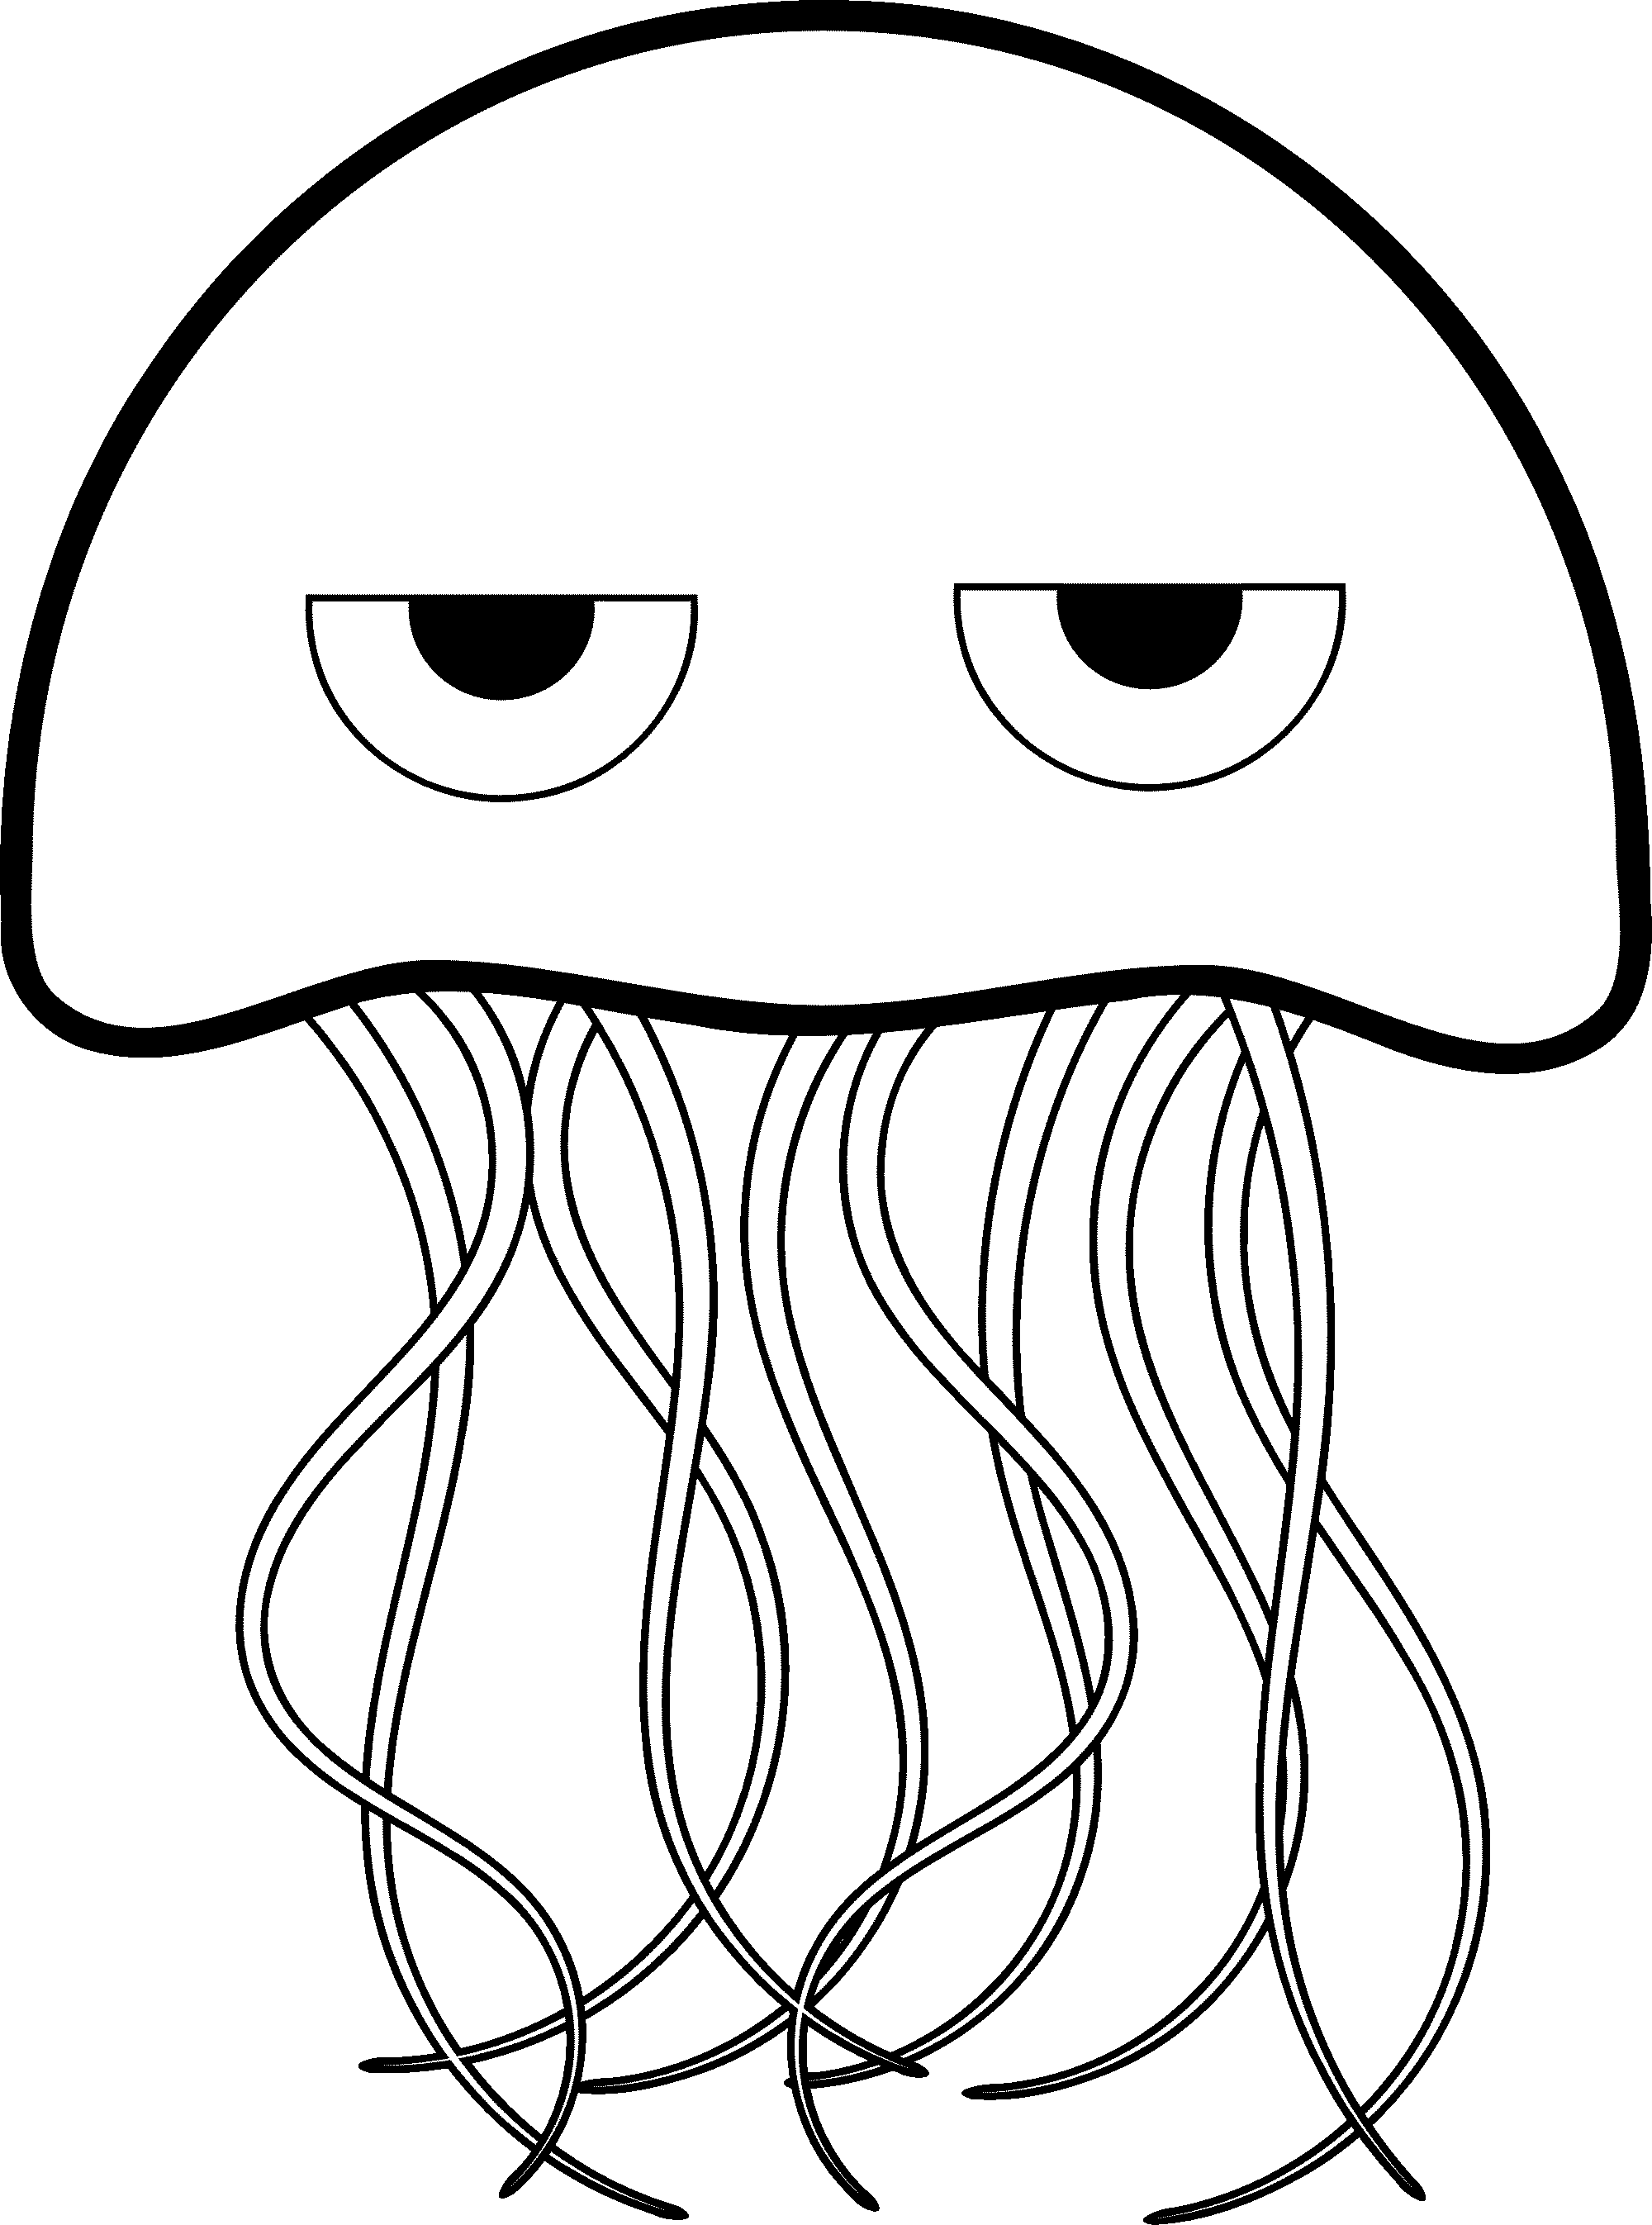 jellyfish coloring jellyfish coloring page free download on clipartmag coloring jellyfish